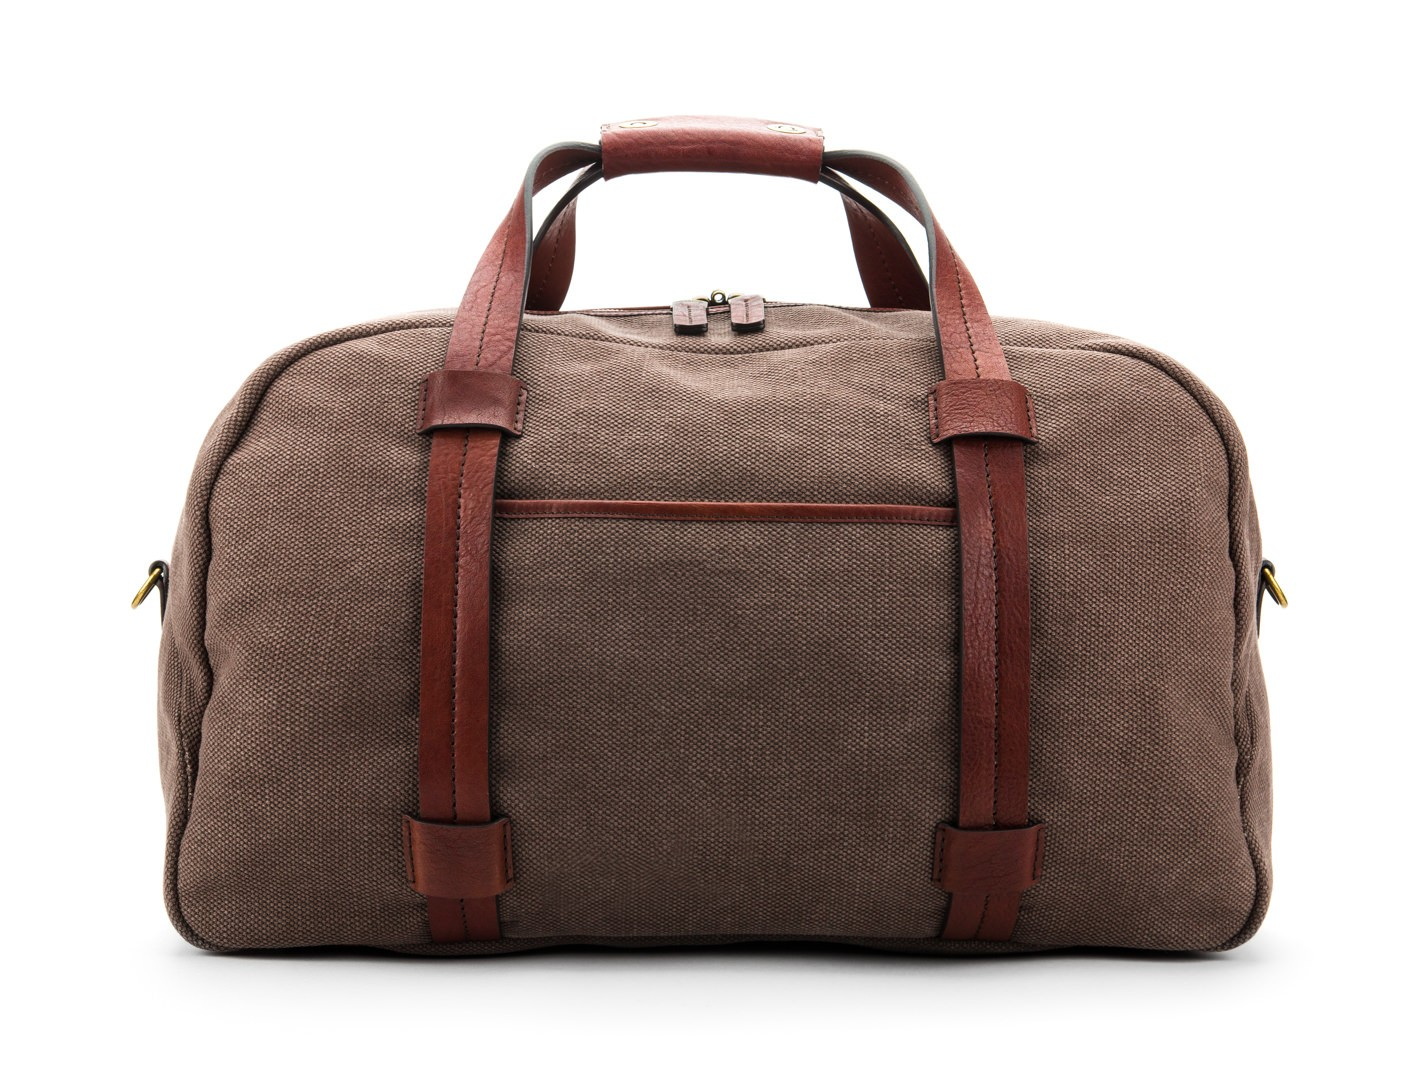 Fabric & Washed Leather Duffle Bag